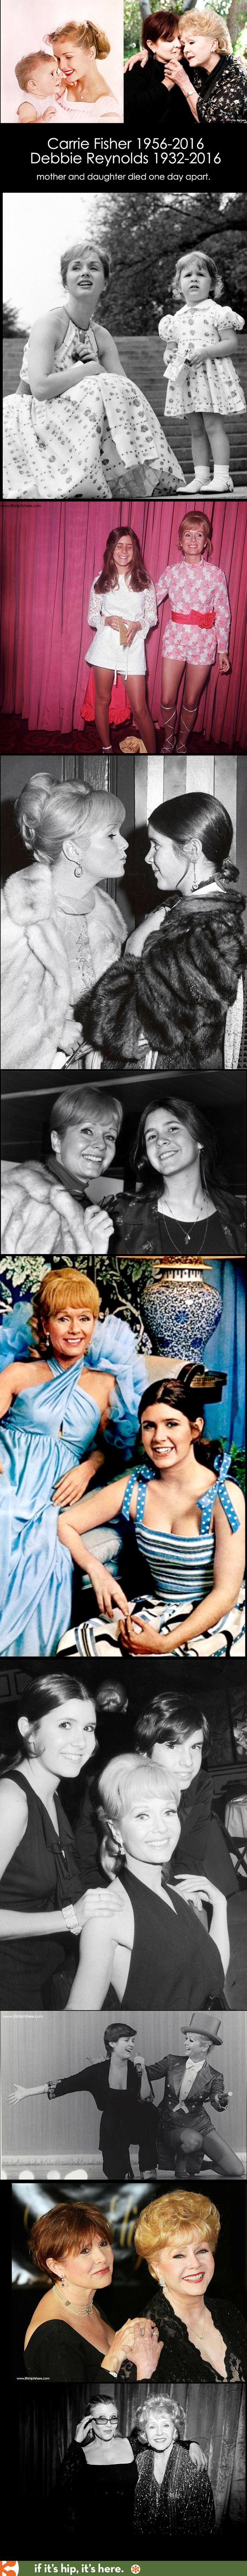 Two beautifully talented women, together again. May God rest their souls. #Carriefisher #DebbieReynolds